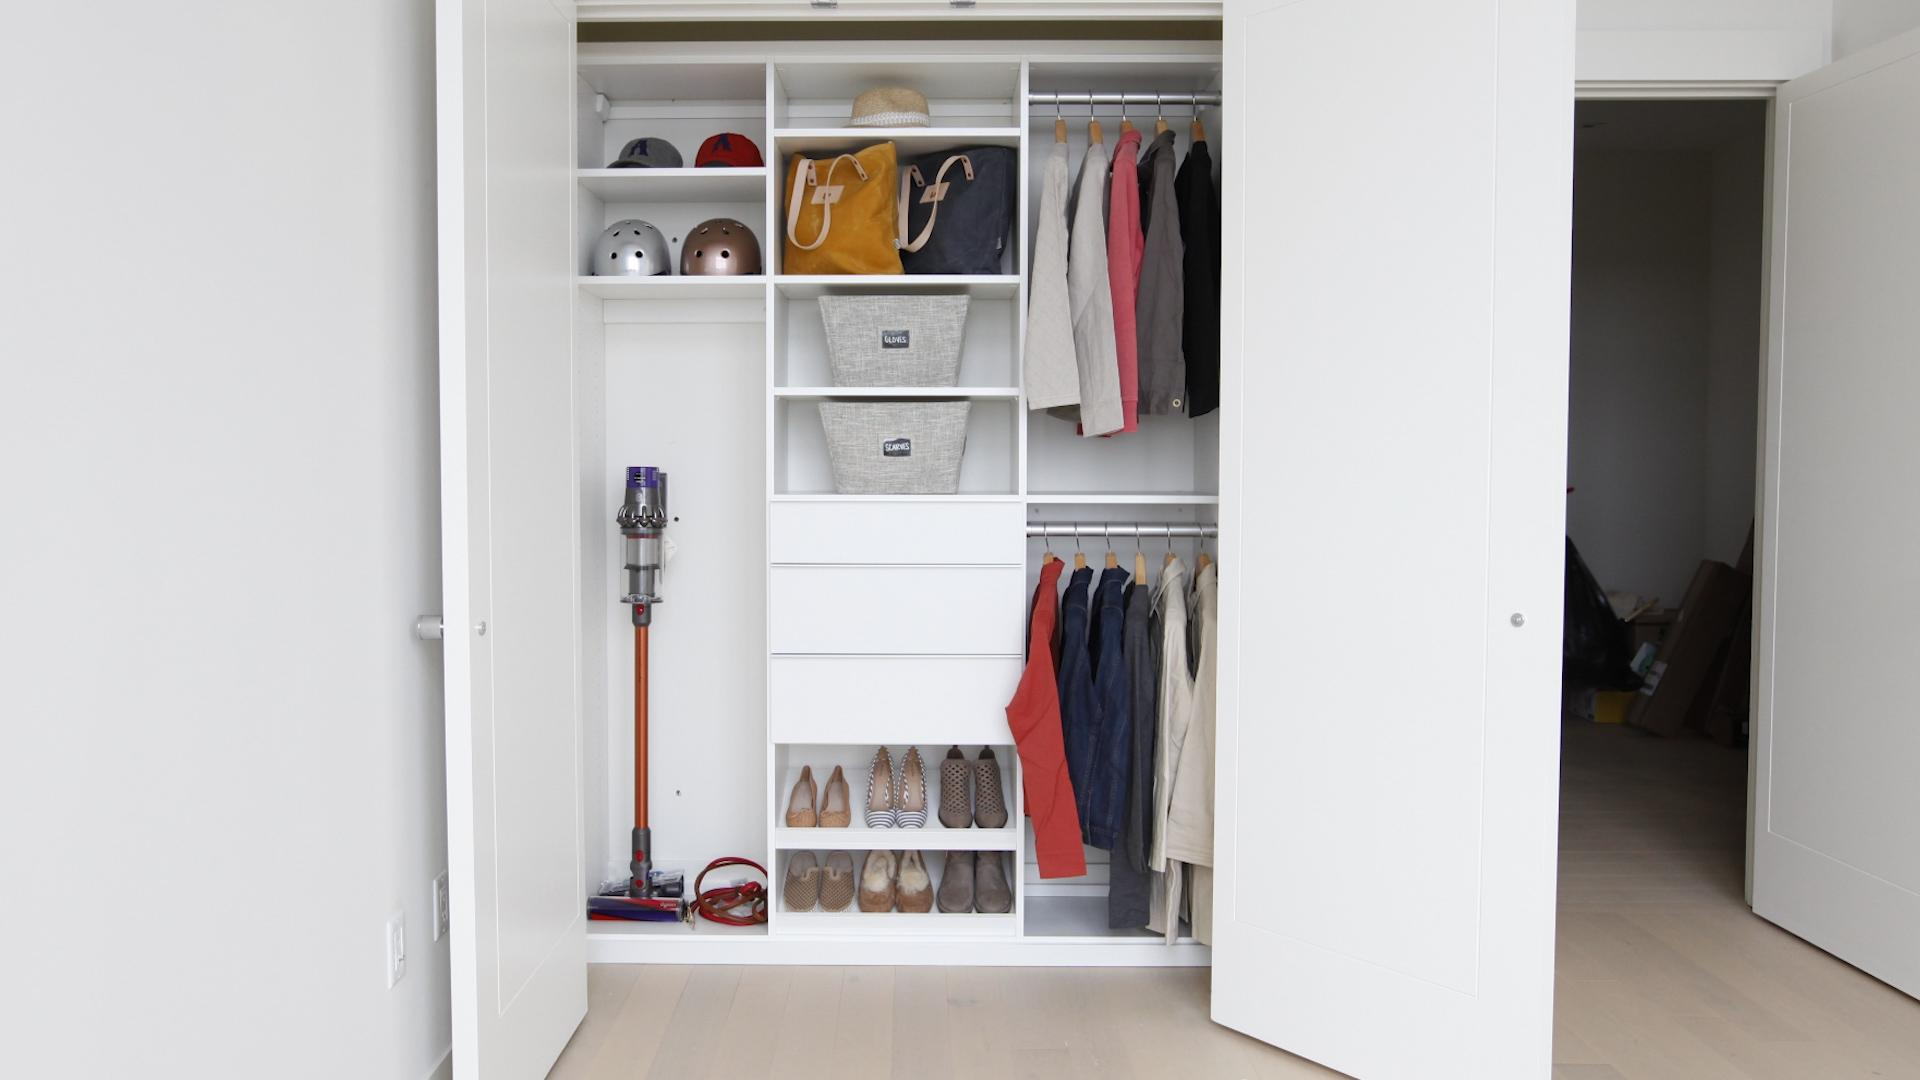 6 Entryway Closet Organizing Ideas To Simplify Your Morning